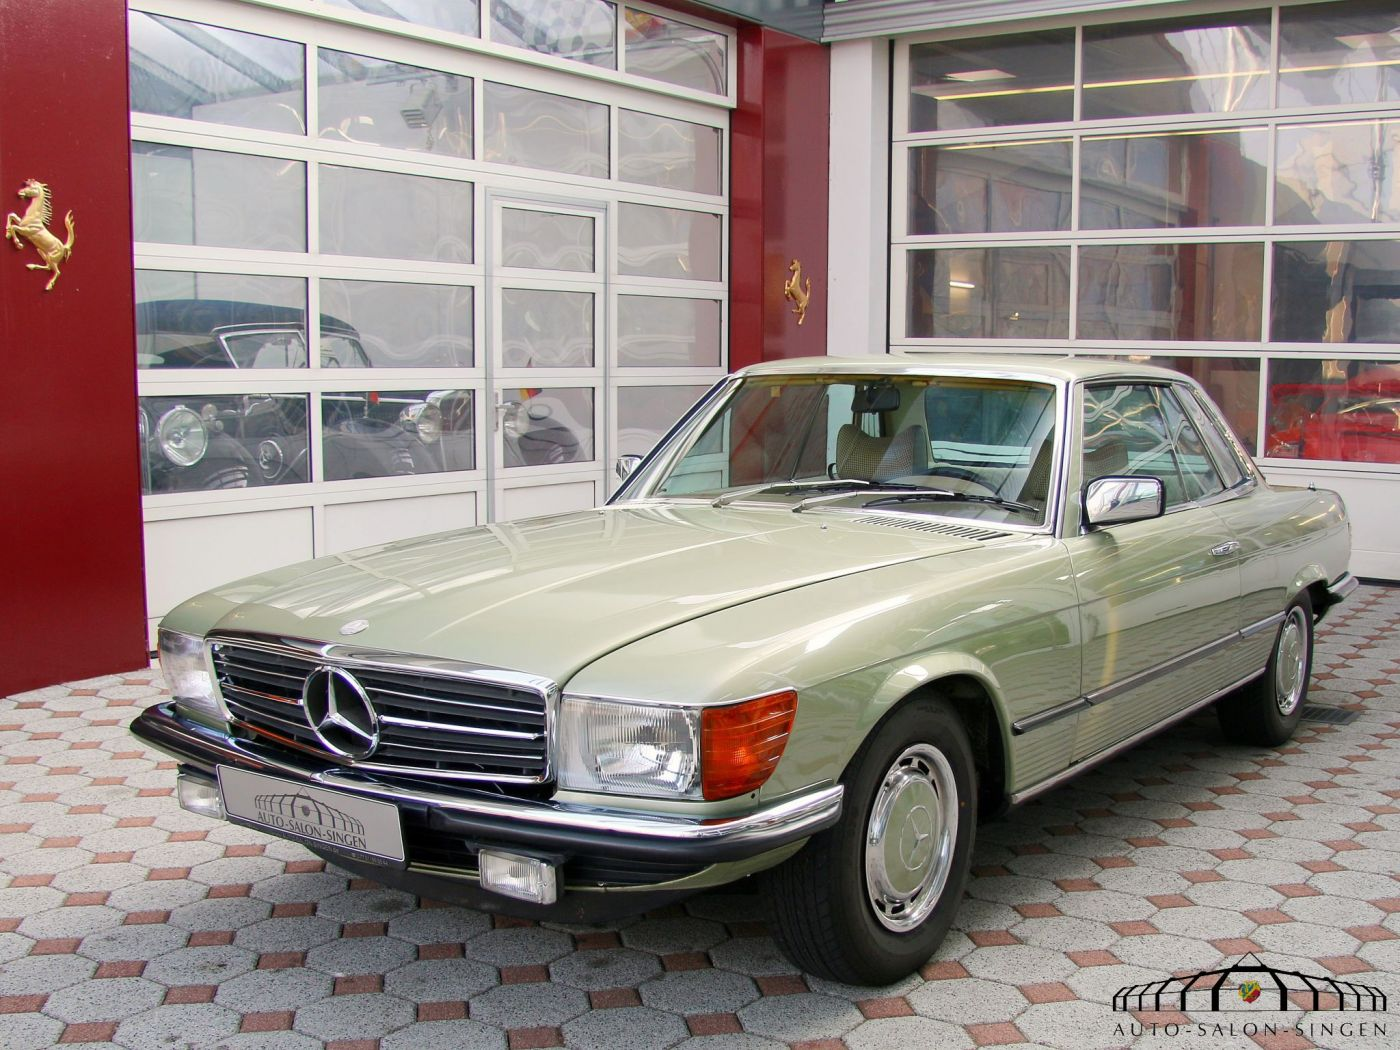 Mercedes benz 450 slc coup auto salon singen for Autos mercedes benz